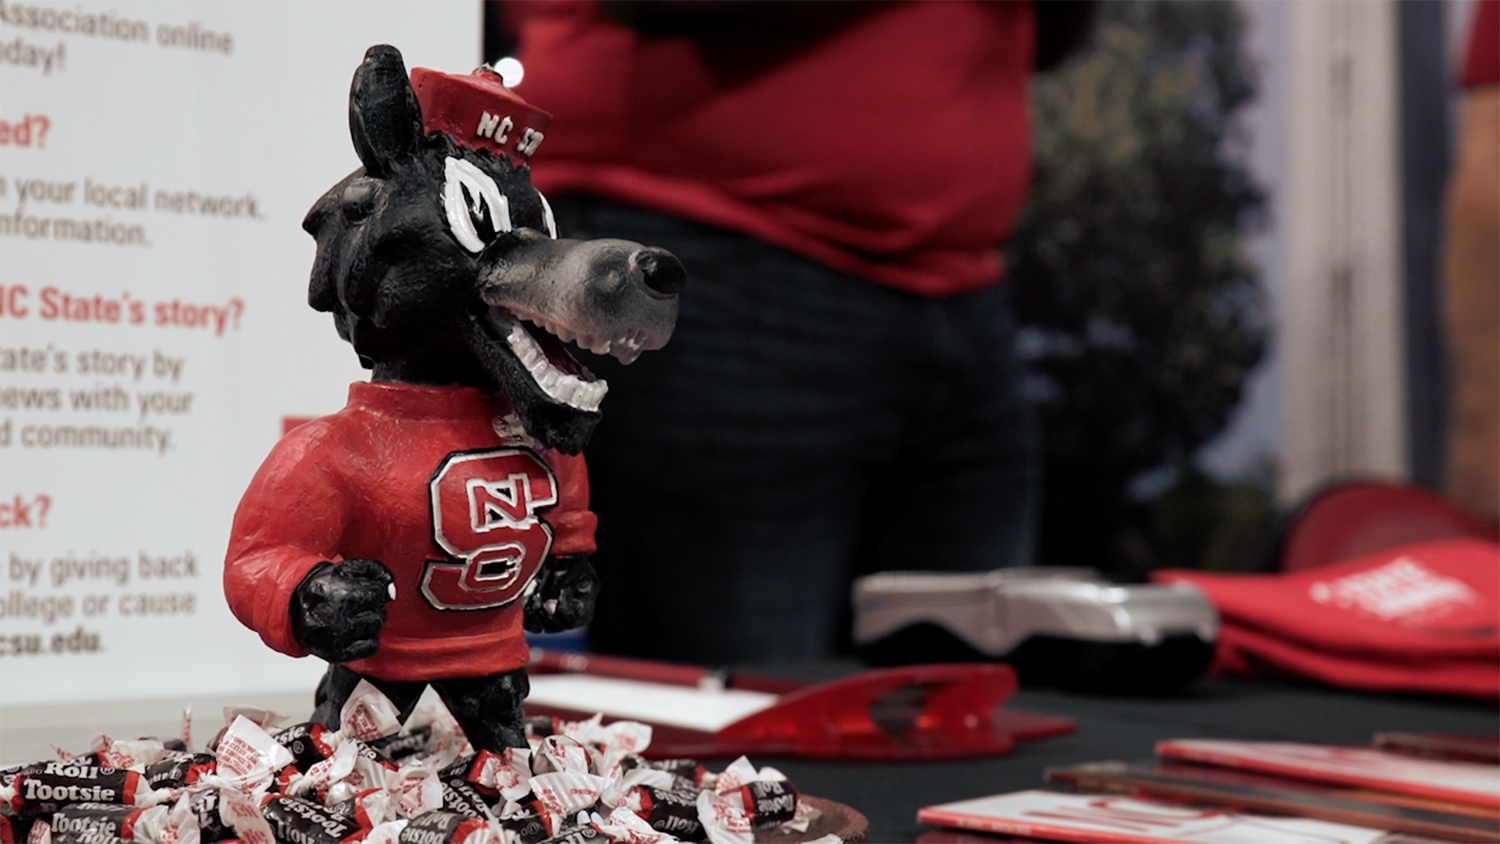 Photo of Tuffy figurine on a table at CALS Tailgate